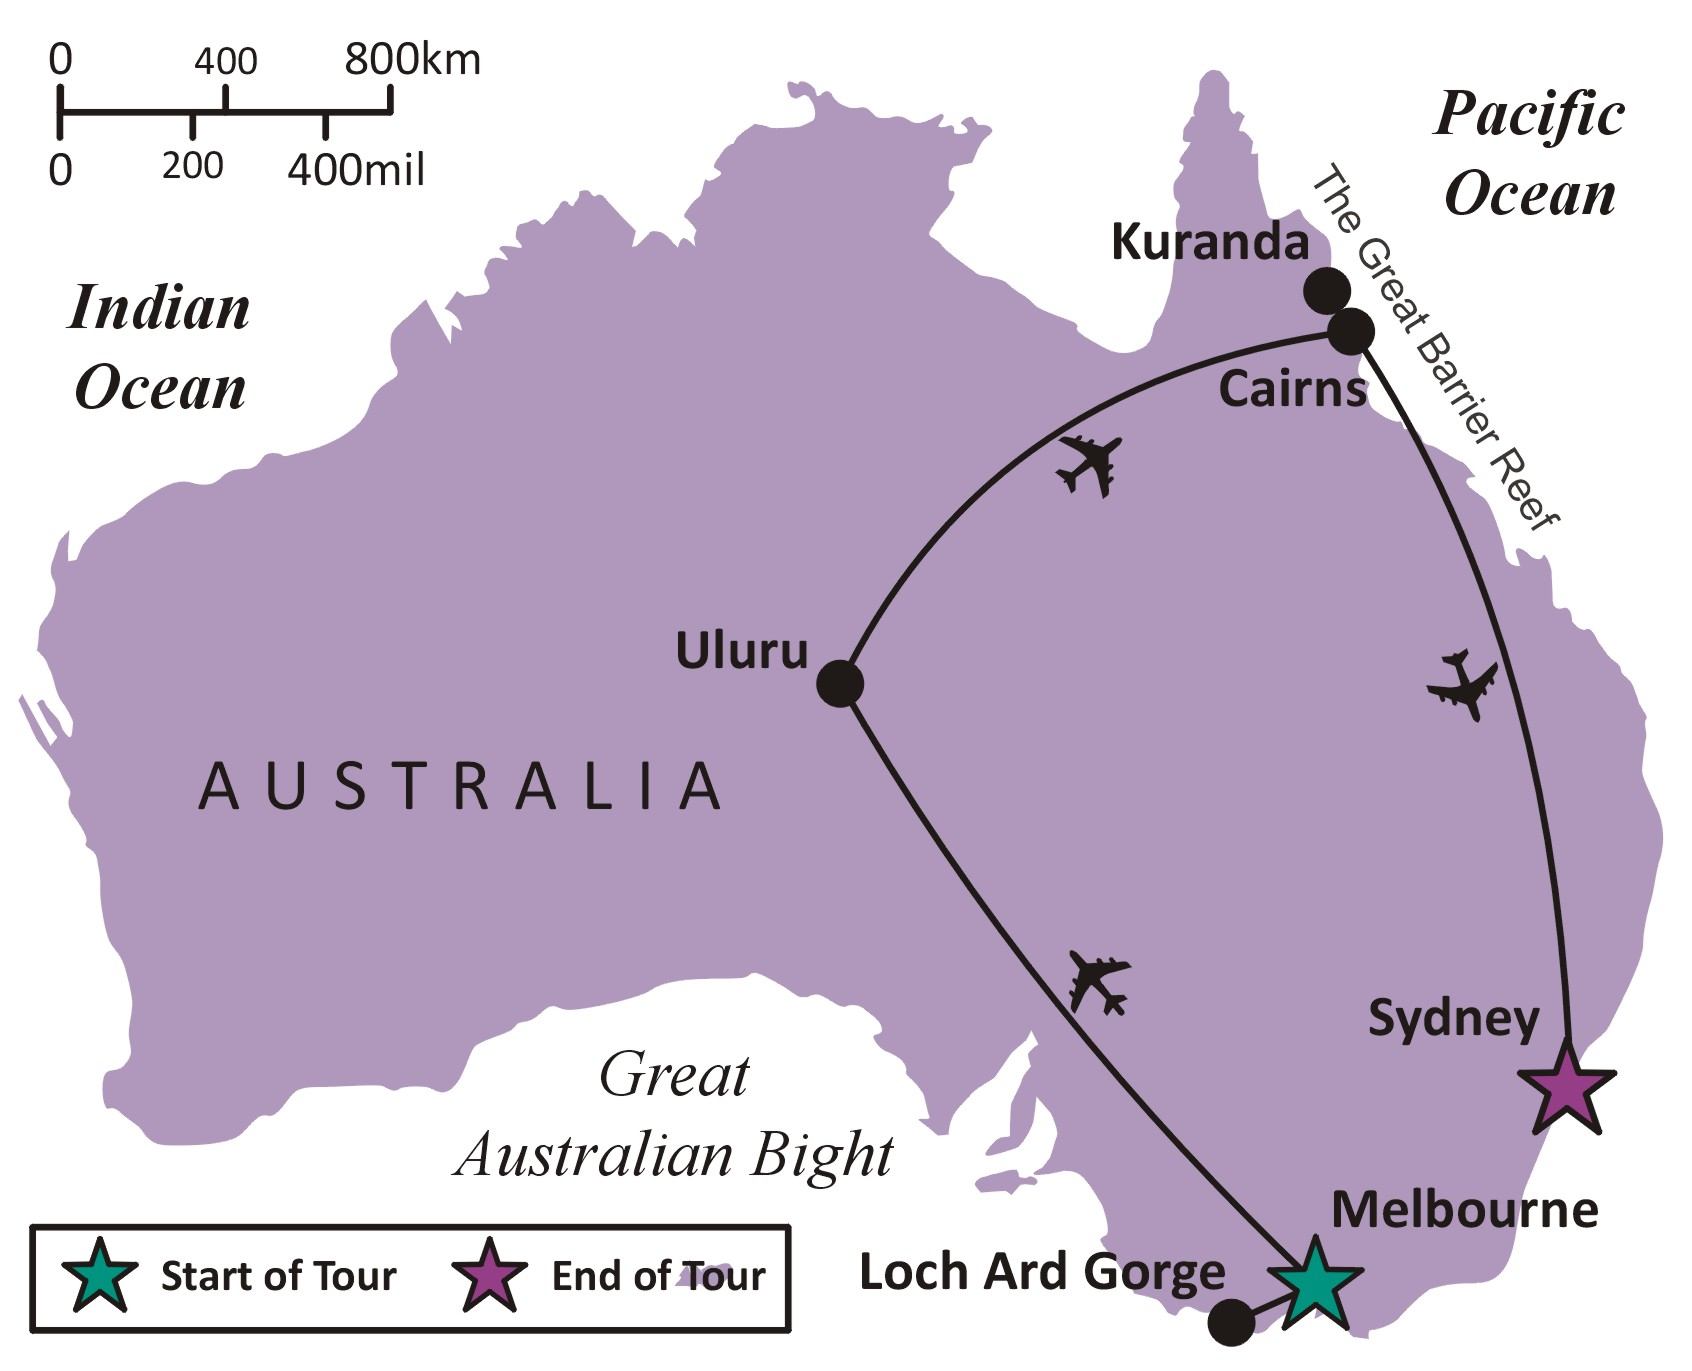 Sights and Soul Travels - The Spectacular Australia - Overview